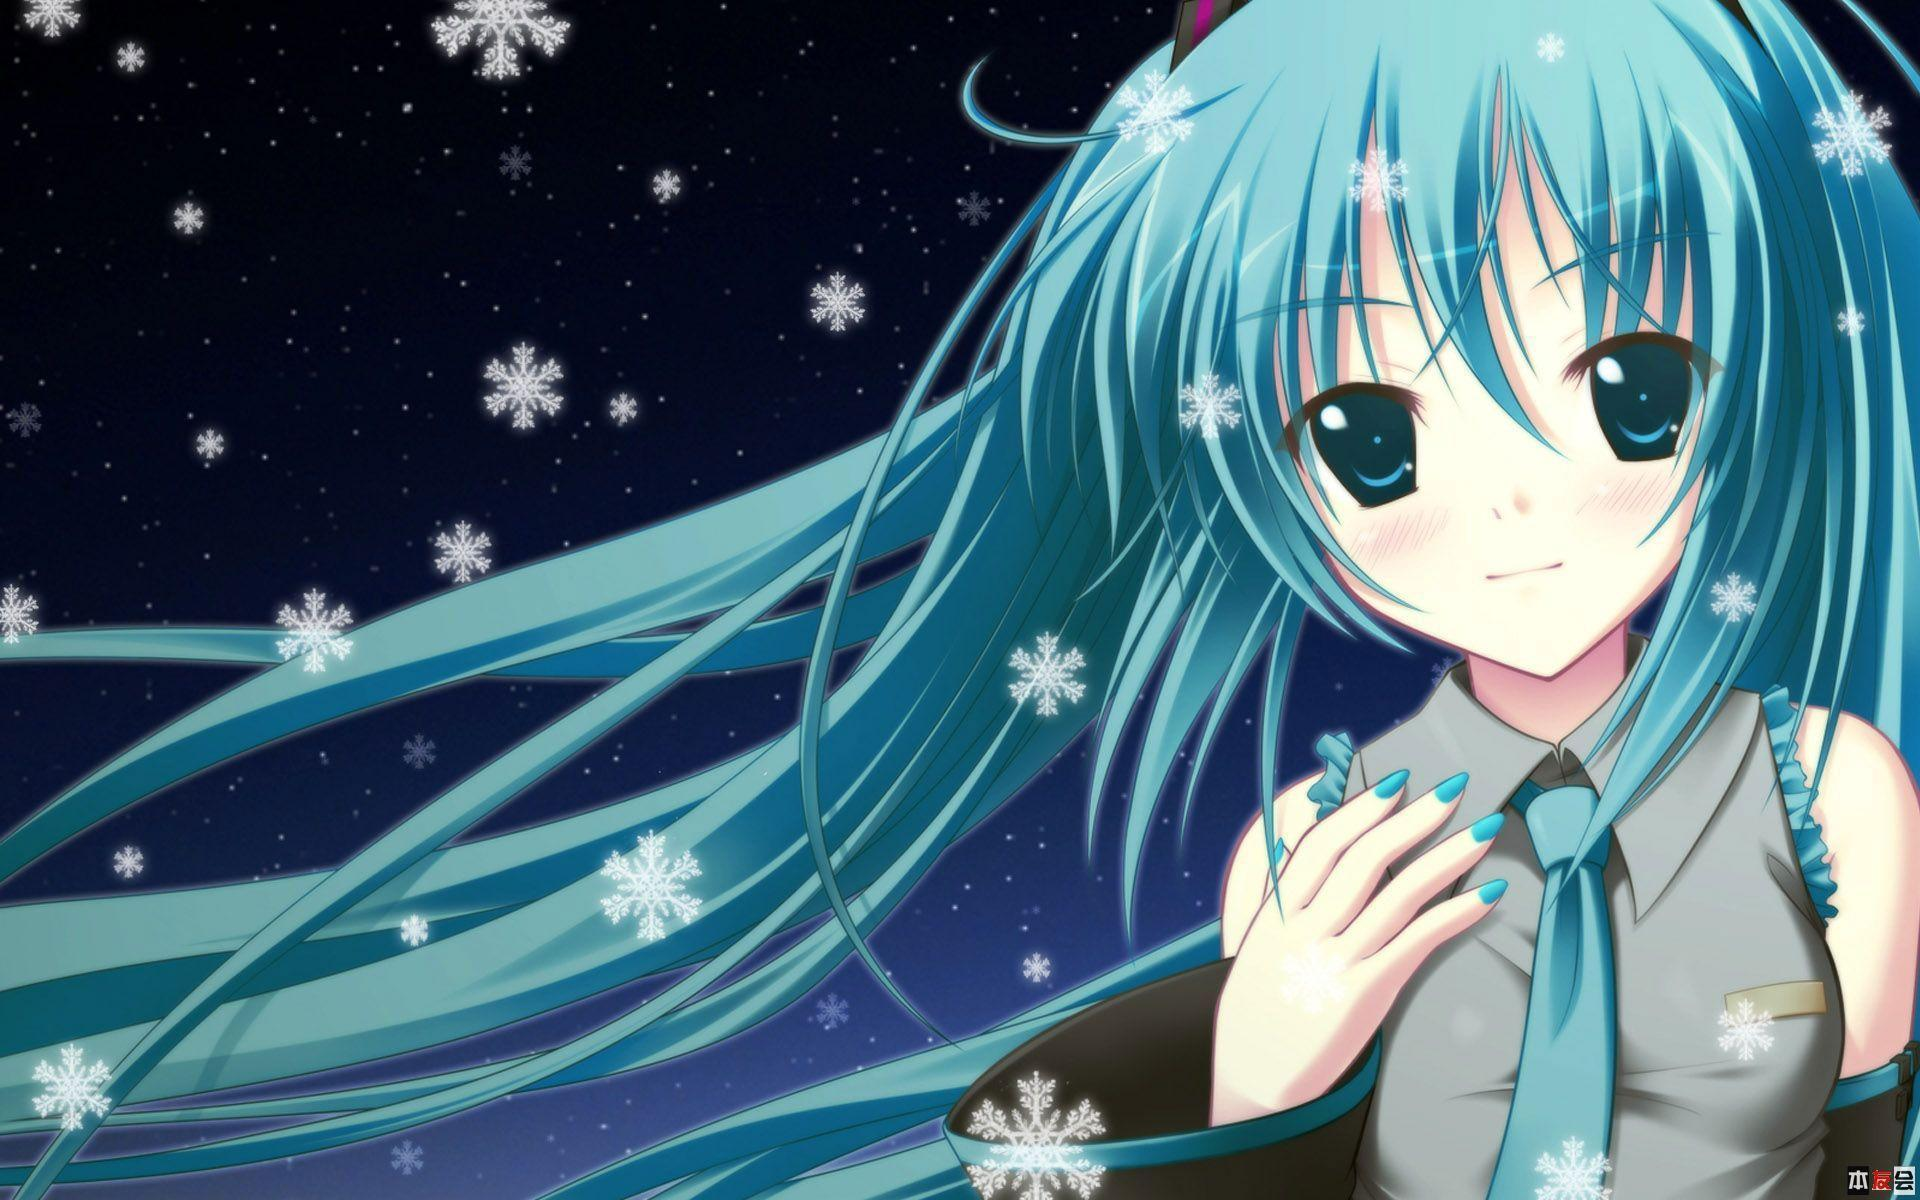 Cute Anime Girl Desktop Wallpapers In Hd With Resolutions 19201200